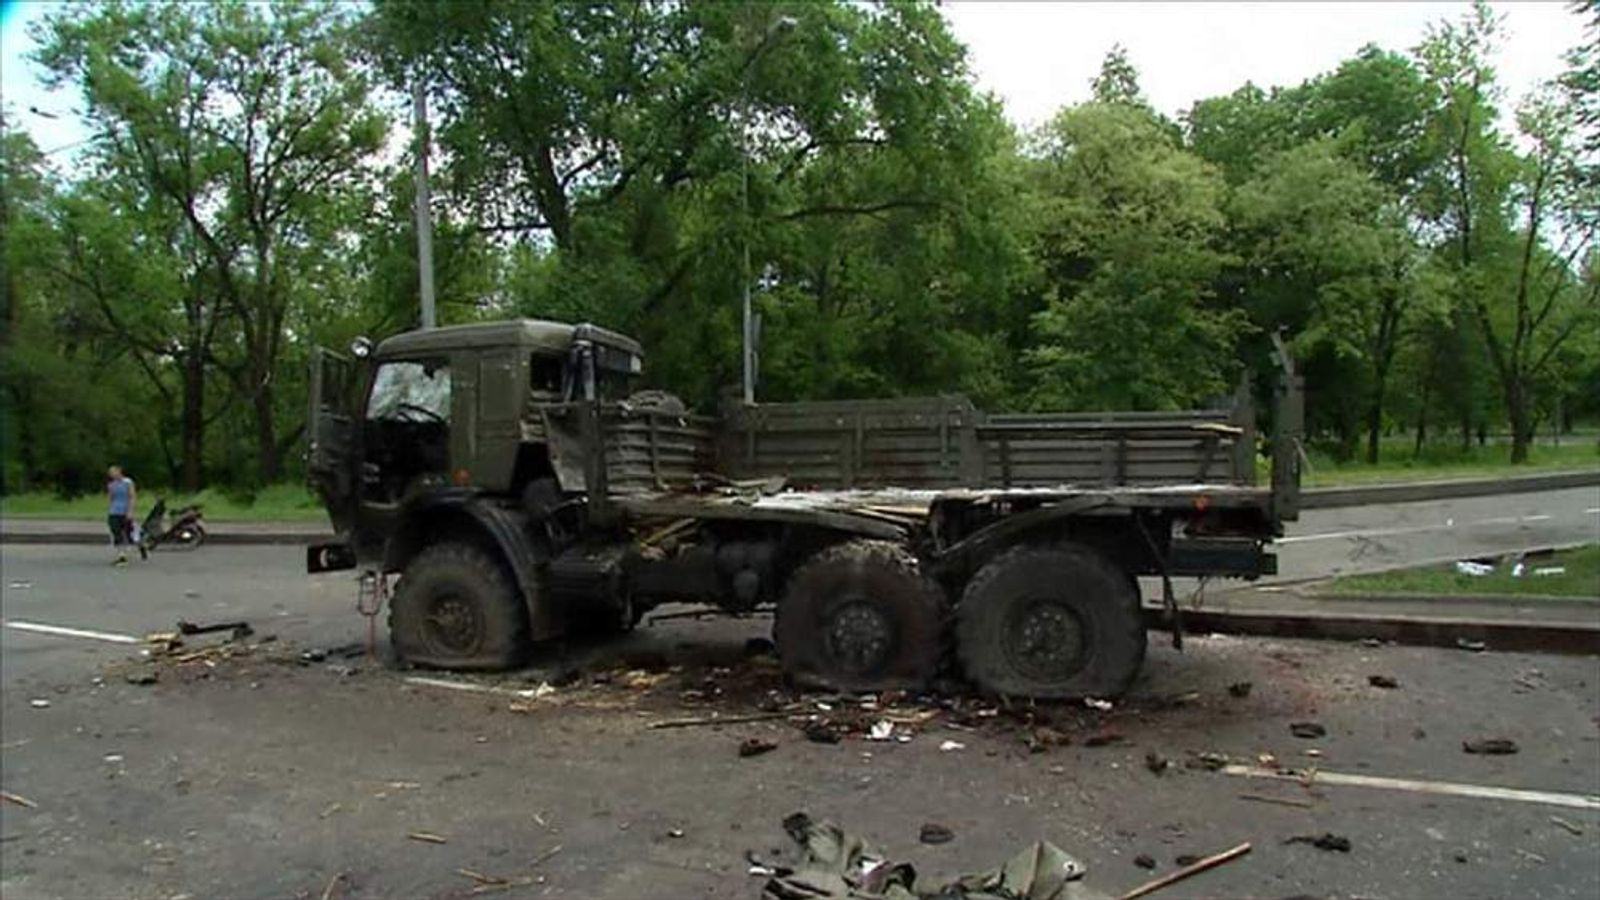 Vehicle damaged in fighting between Ukraine govt forces and militants